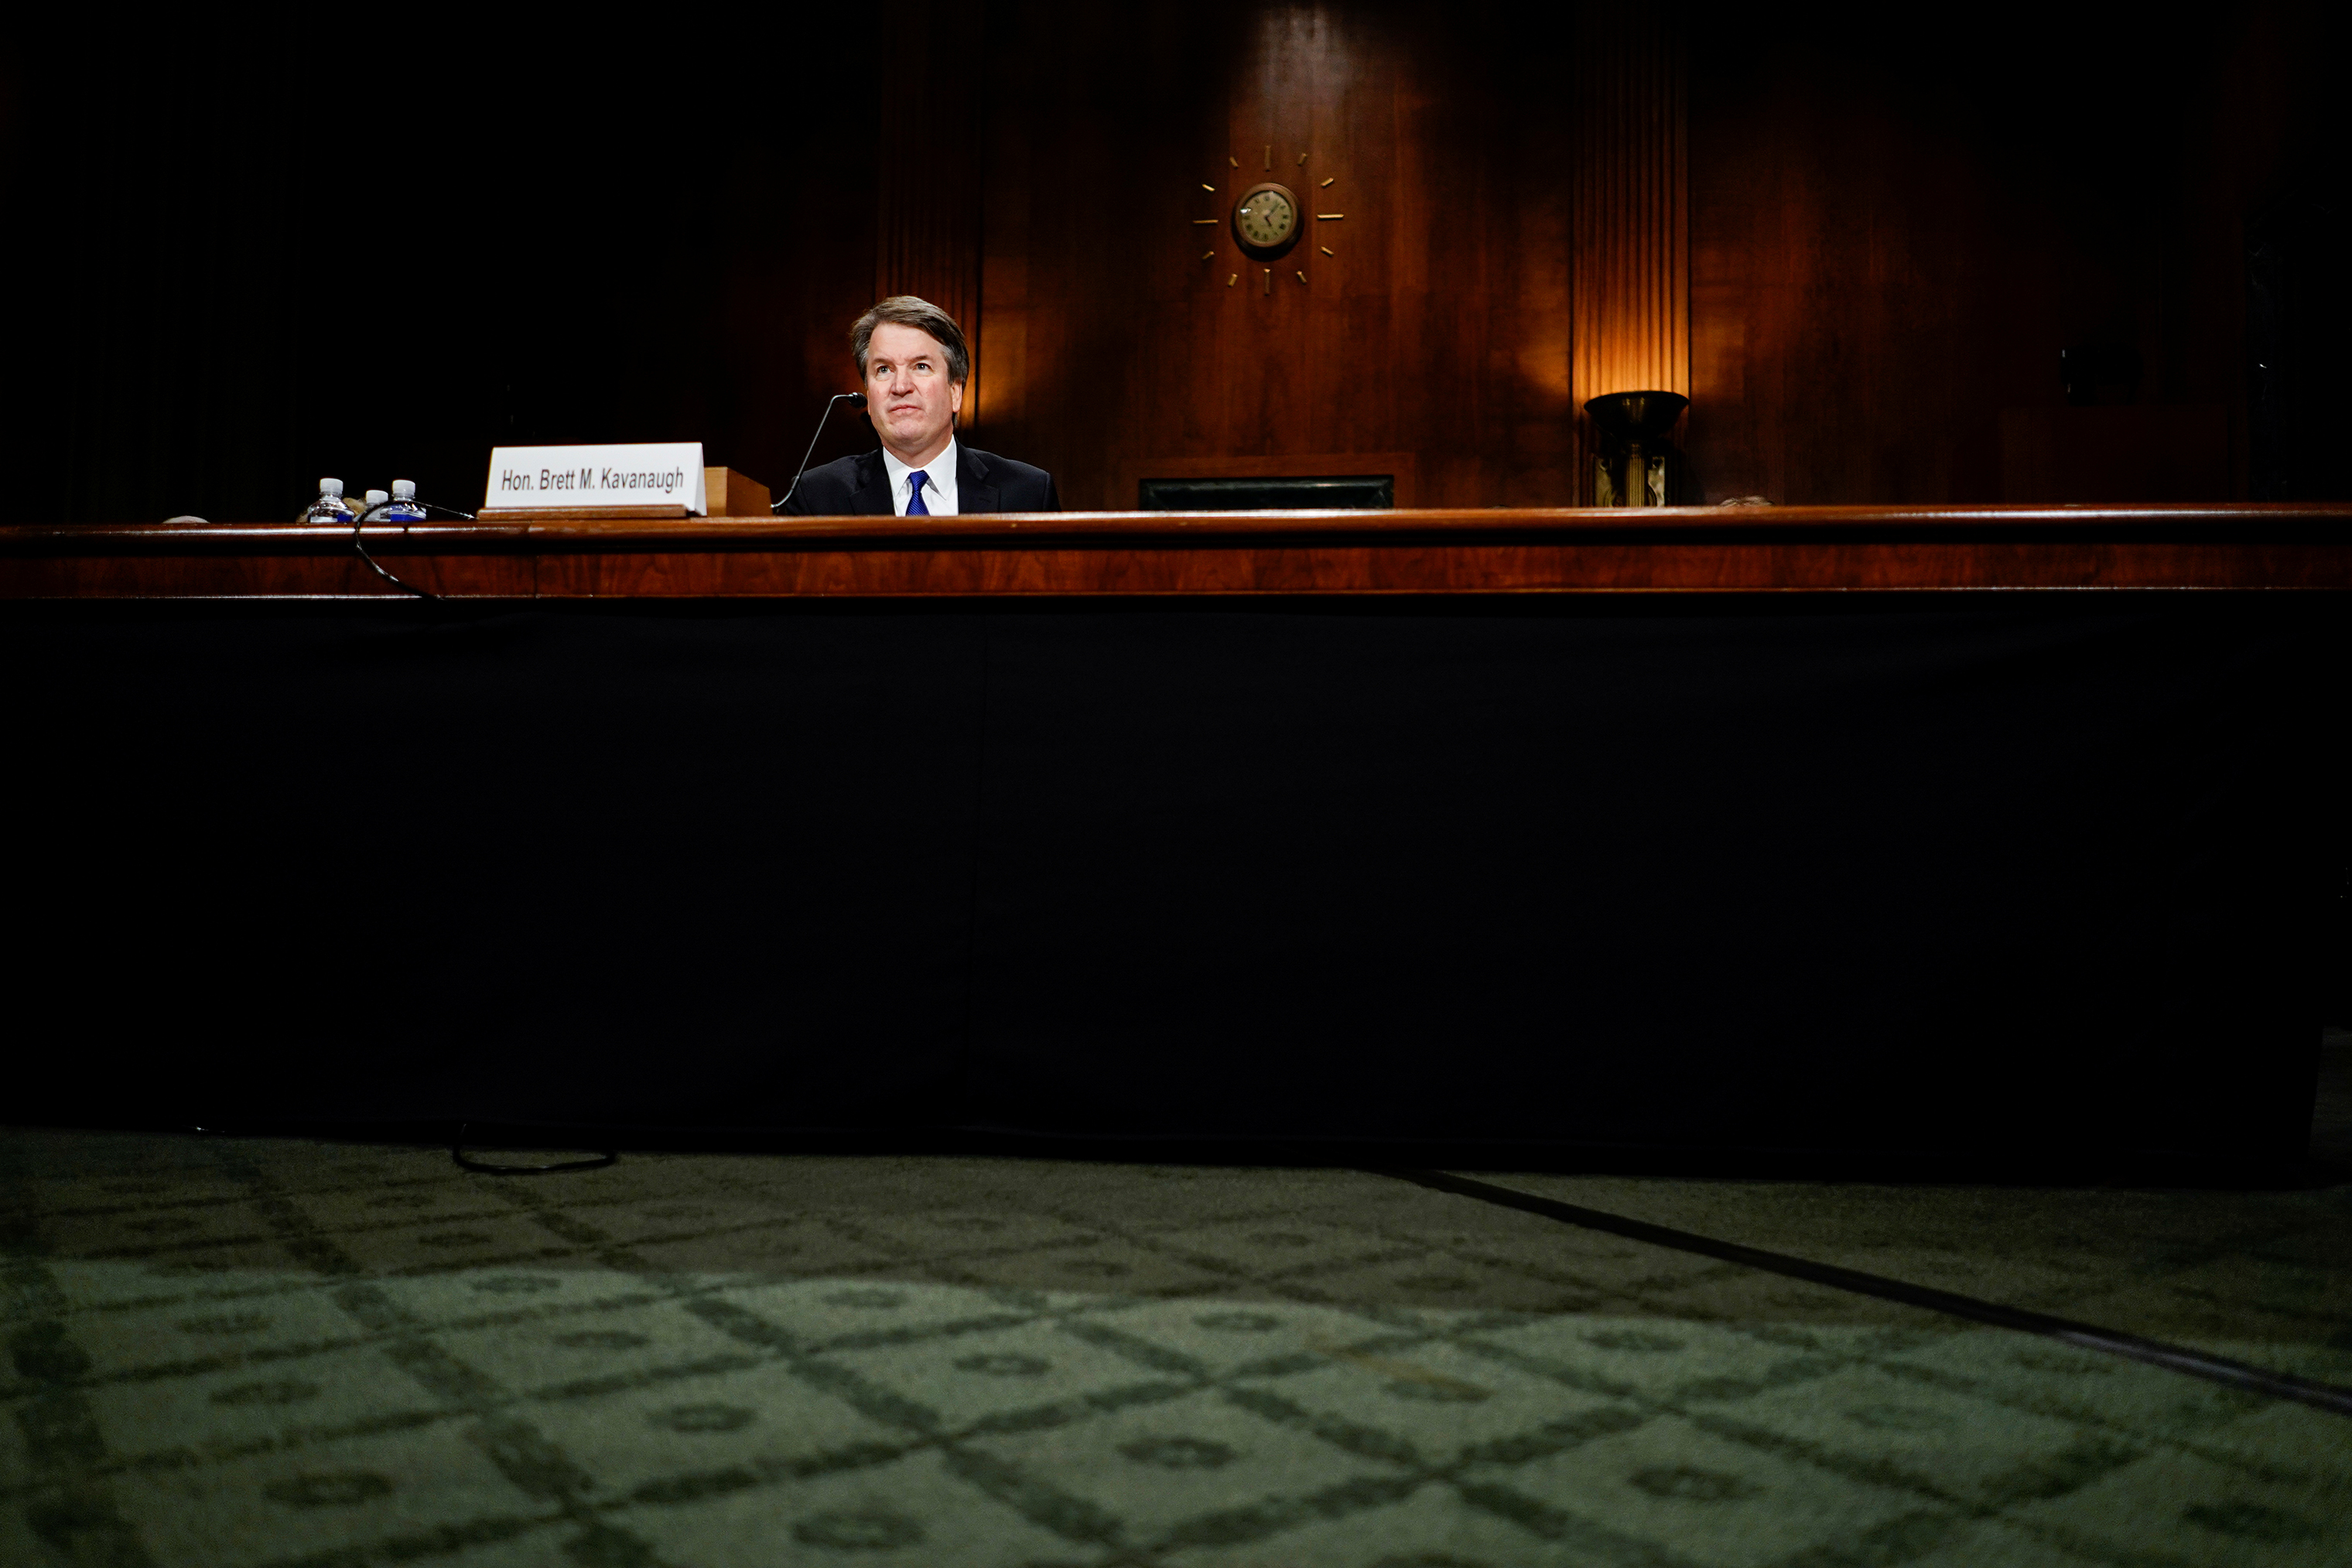 Judge Brett M. Kavanaugh at the Senate Judiciary Committee hearing on Sept. 27.